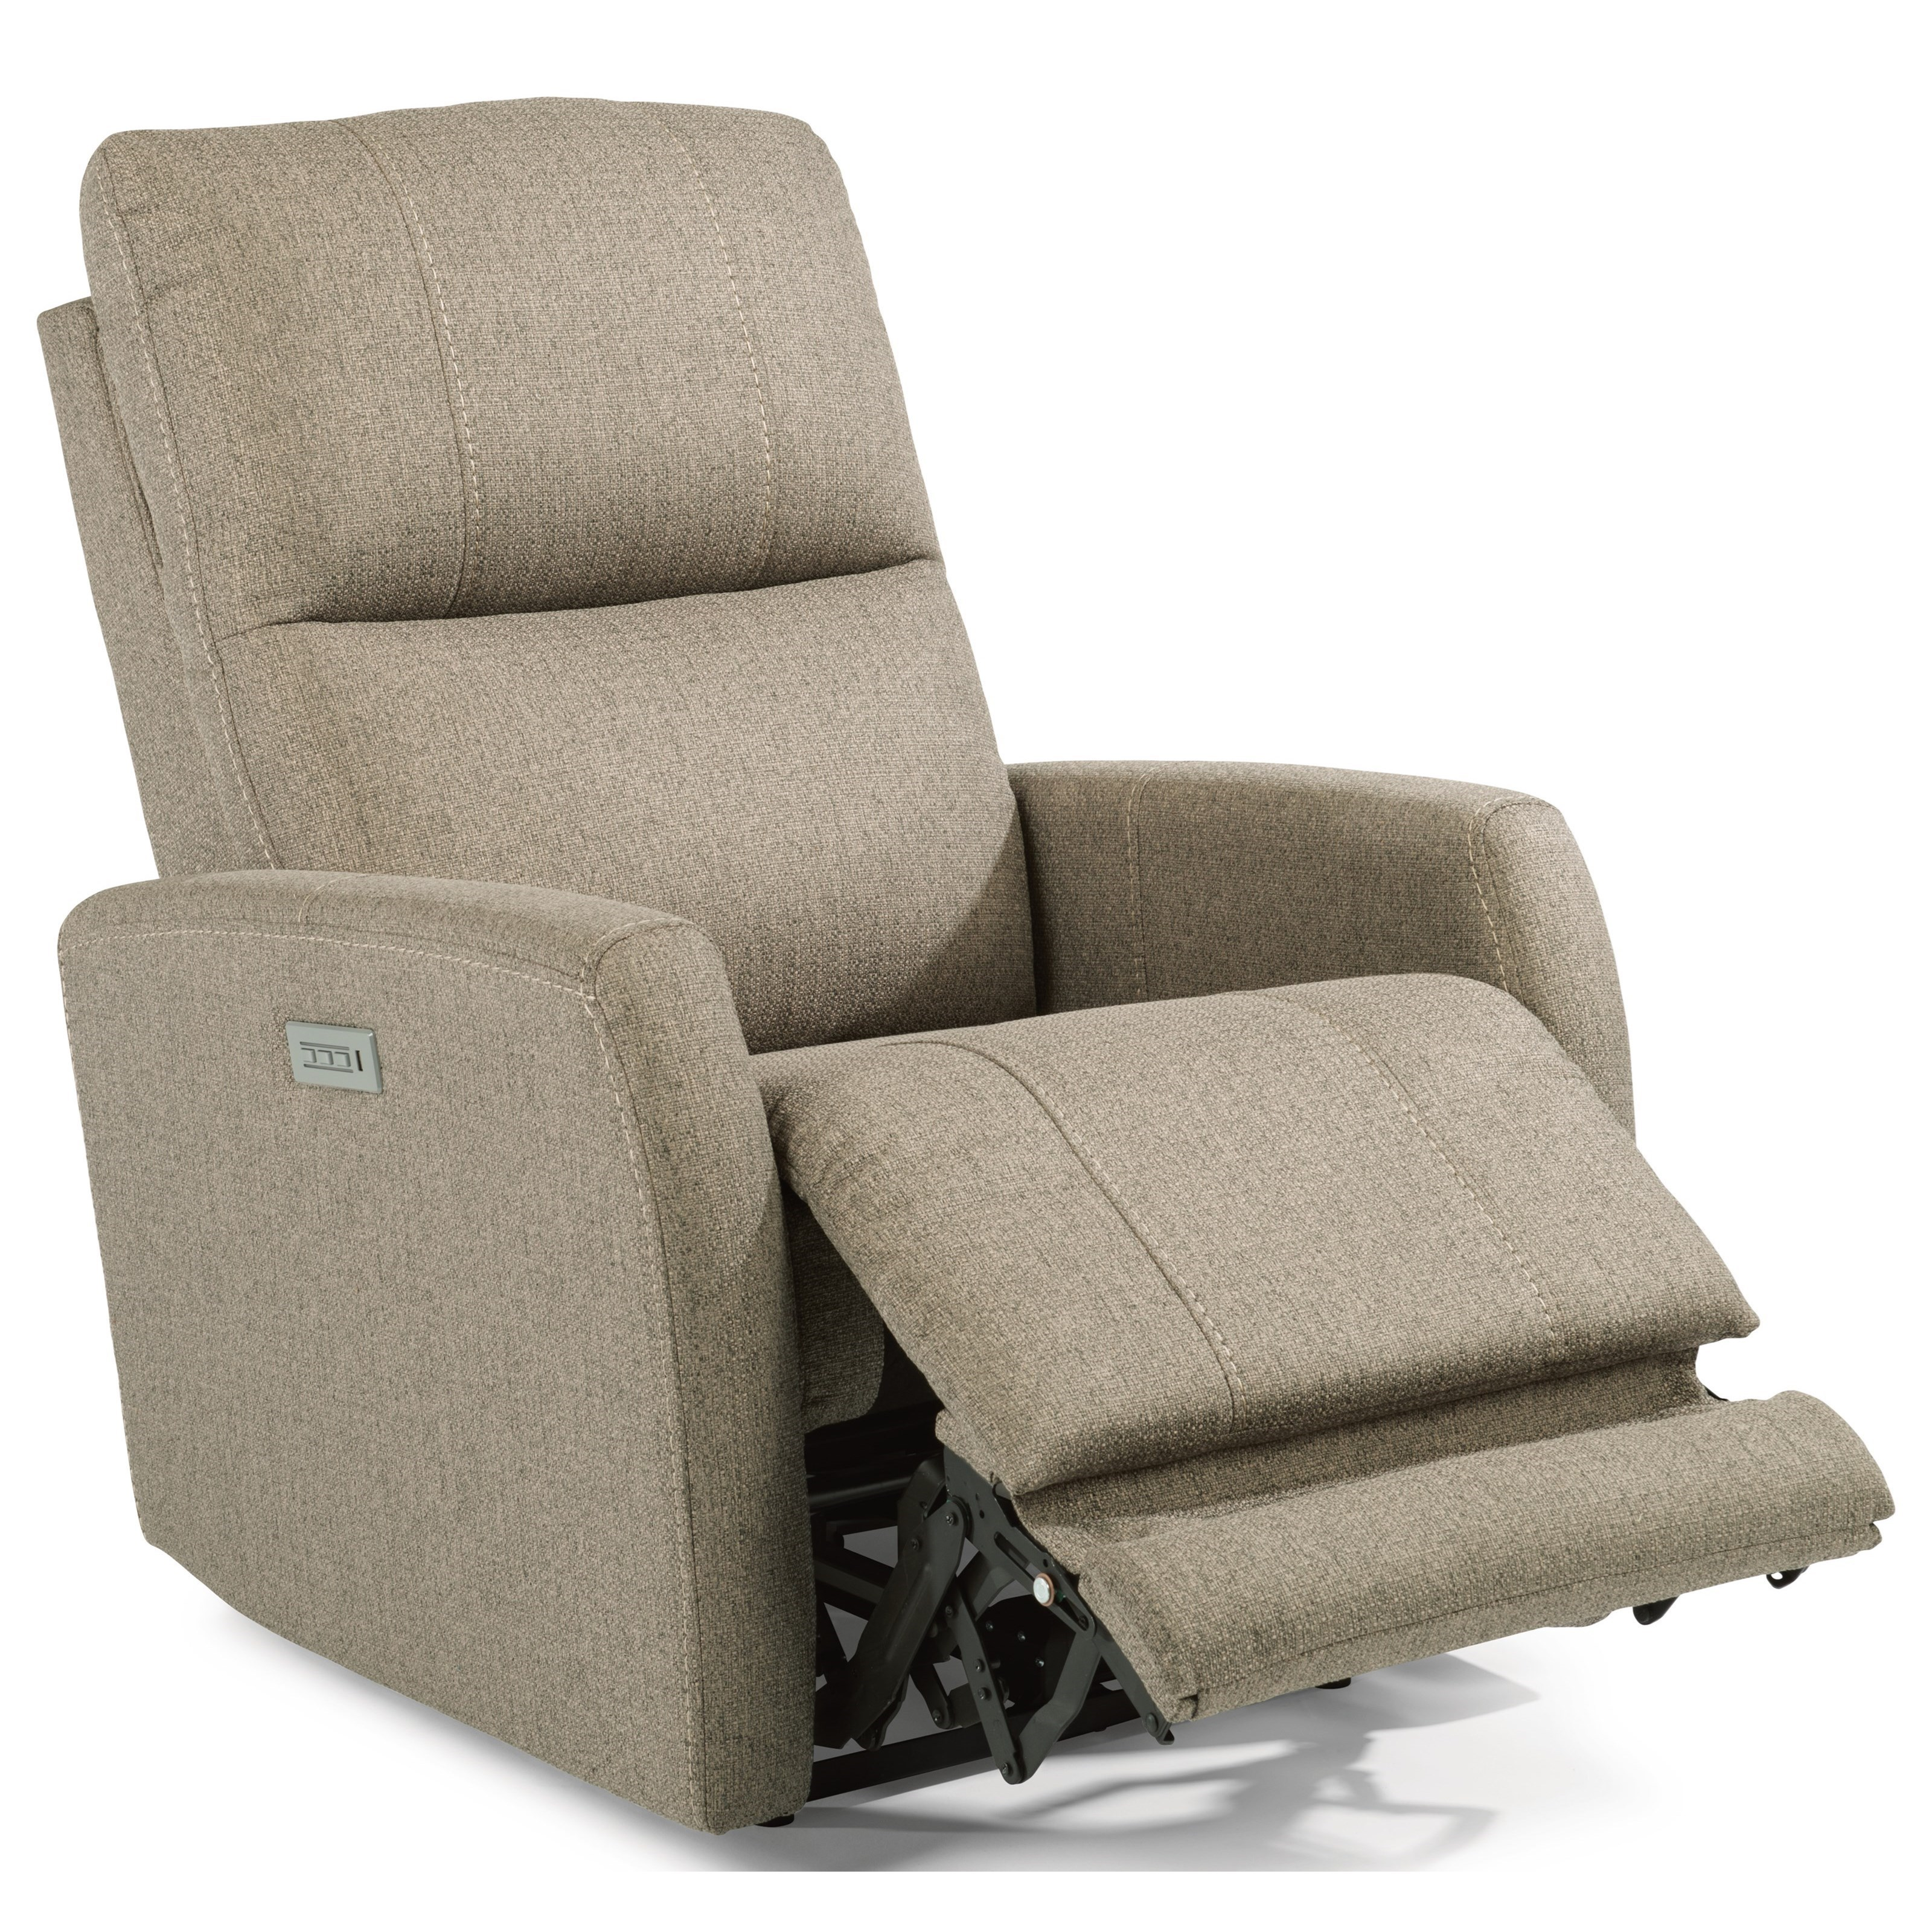 Flexsteel Latitudes - Sadie Contemporary Power Recliner with Power Headrest and Lumbar  sc 1 st  Goffena Furniture & Flexsteel Latitudes - Sadie Contemporary Power Recliner with Power ...